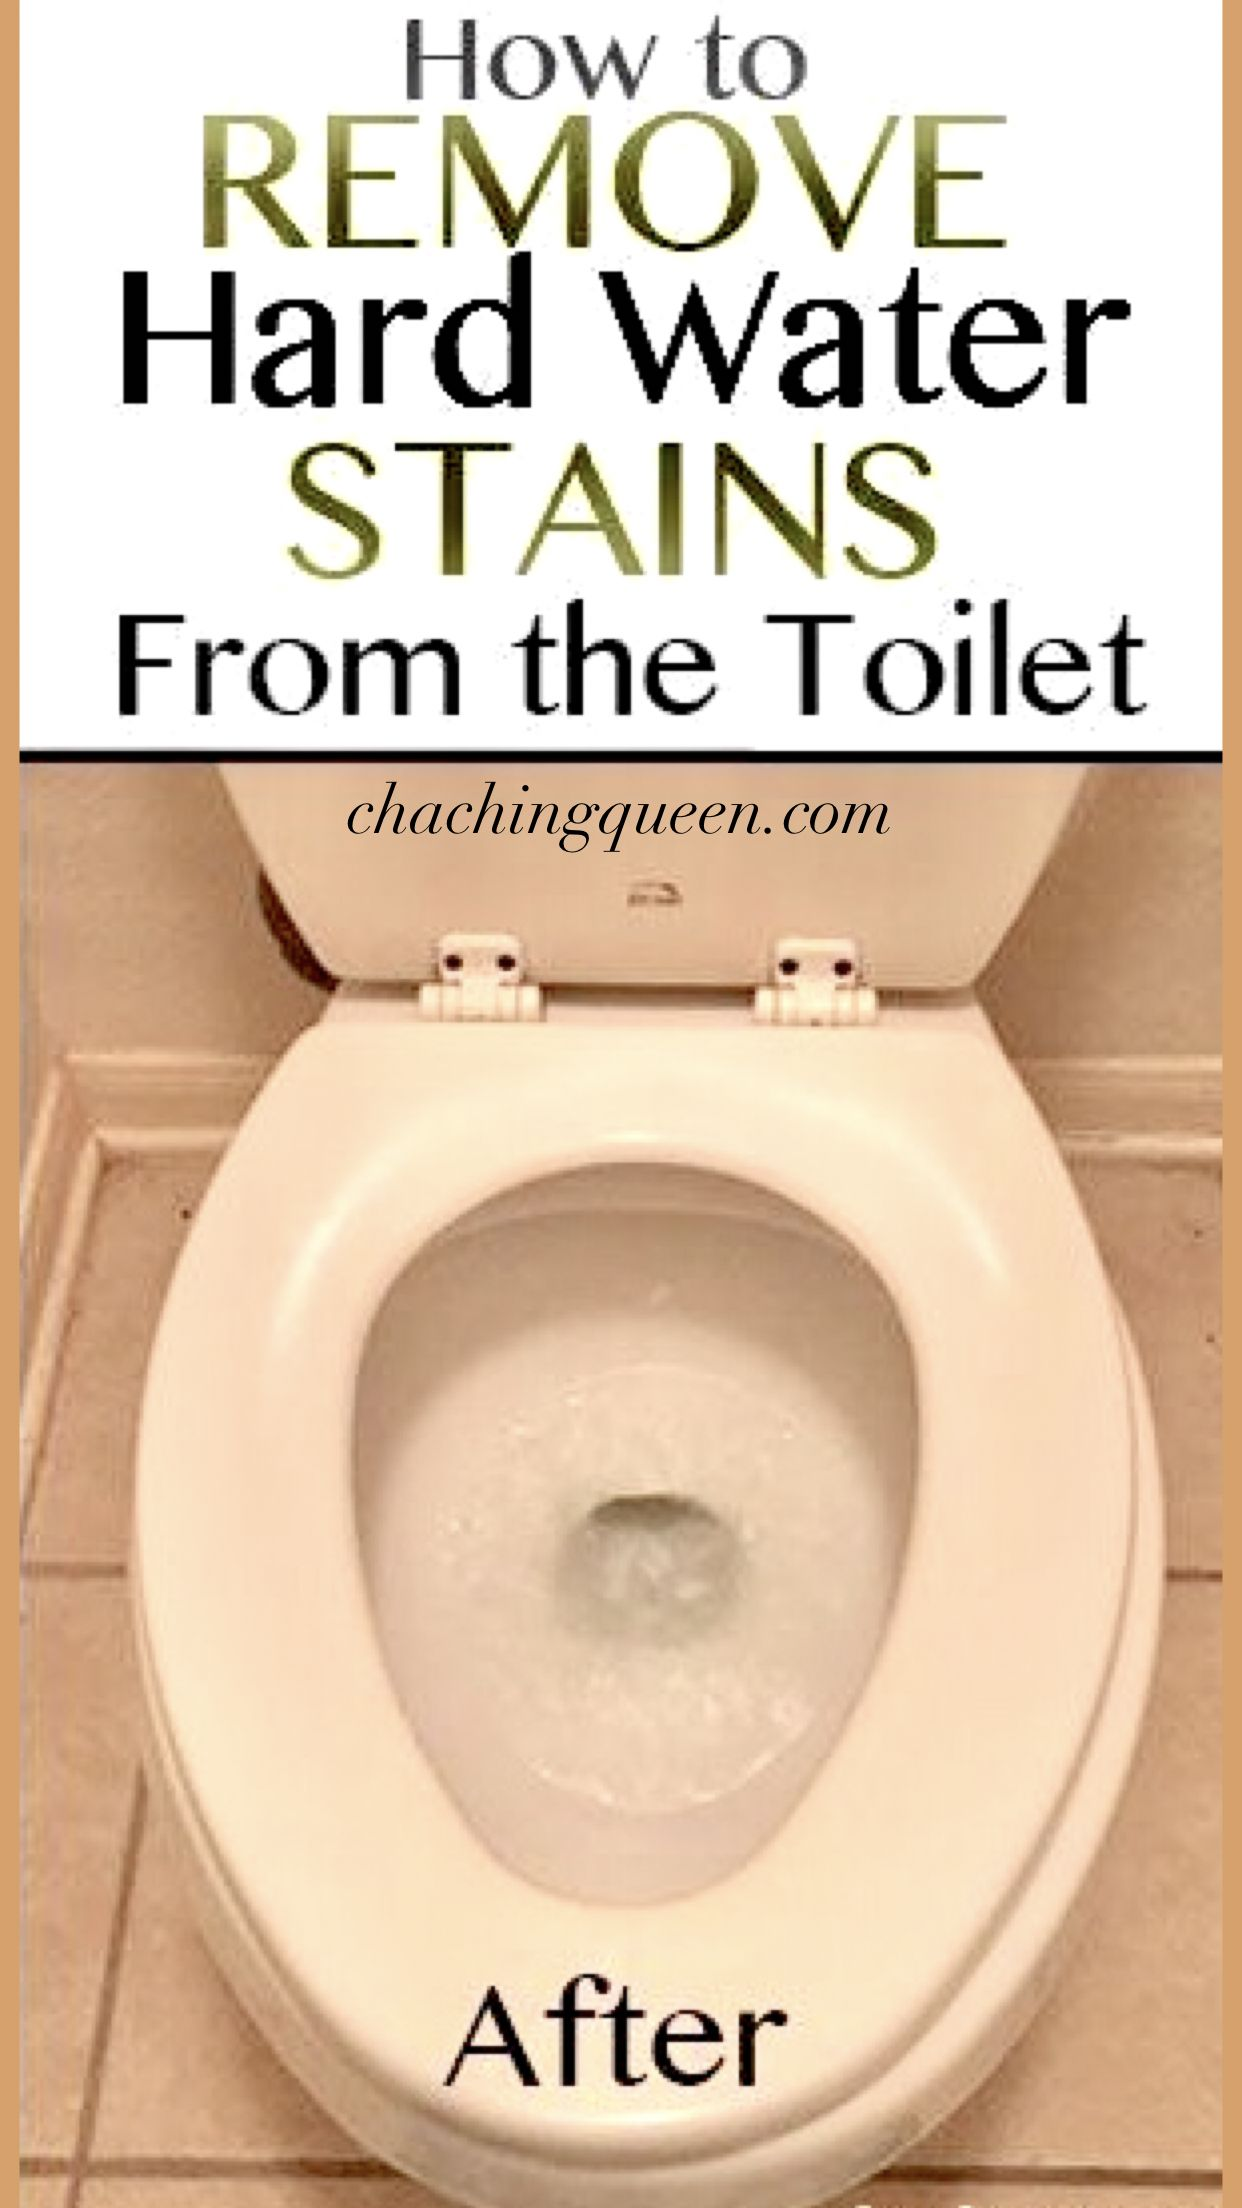 How To Clean A Toilet And How To Remove Hard Water Stains Hard Water Stains Hard Water Stain Remover Toilet Stains